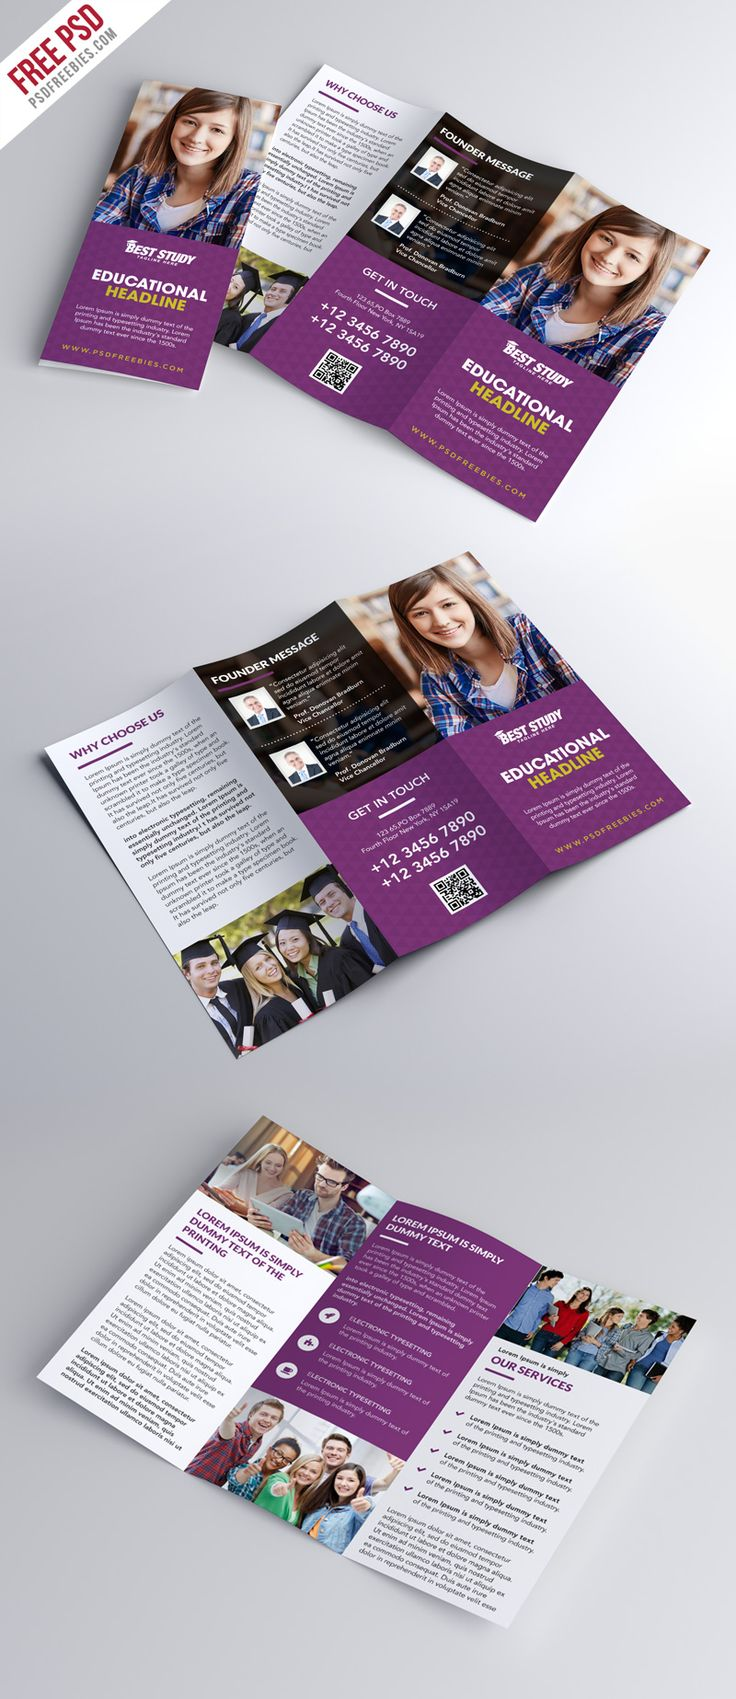 Download Free University College Trifold Brochure PSD Template. This modern and professional university college trifold brochure PSD template is suitable for any kind of university, education institute, school, college, kids kinder garden and more. This university college trifold brochure PSD template is super simple to edit and customize with your own details. Simply add your own images and text.